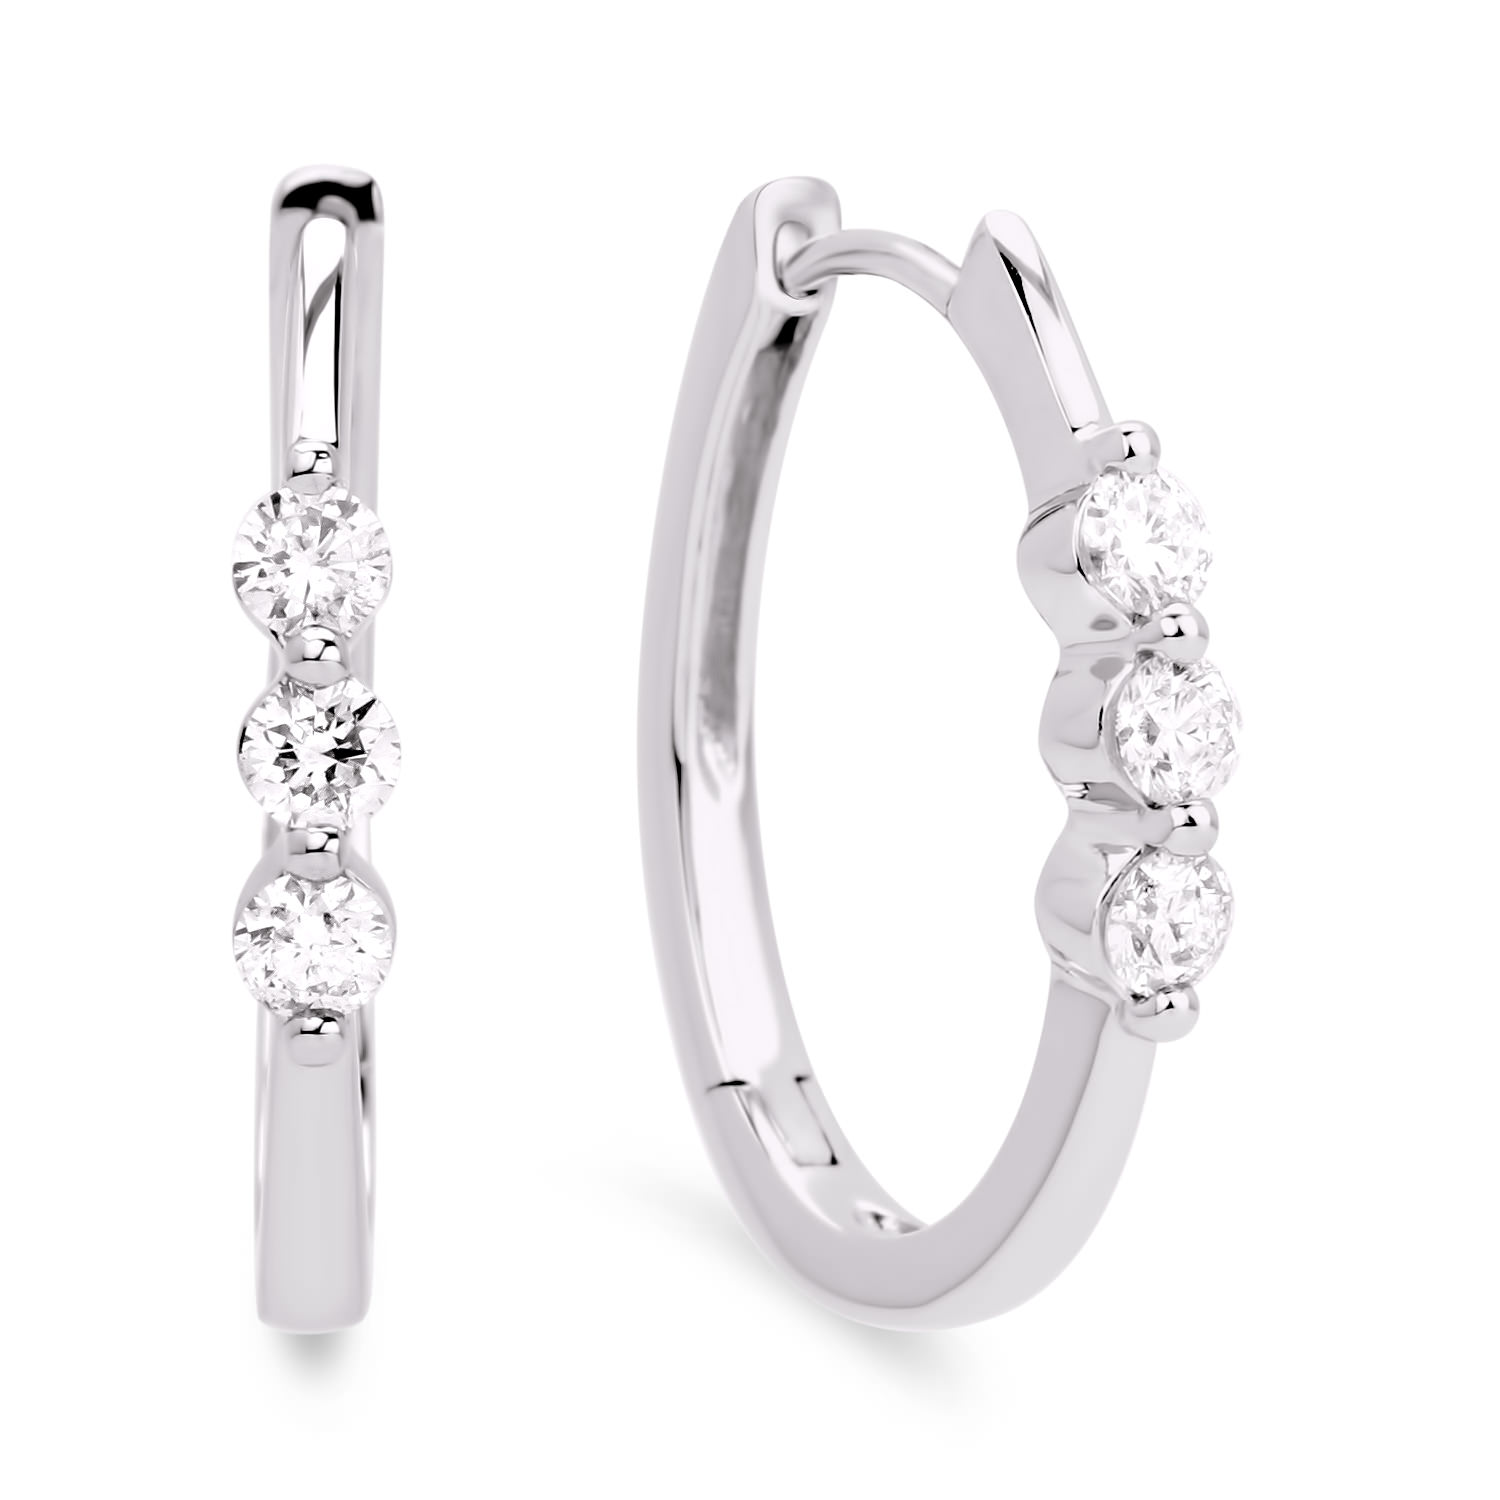 Diamond Hoop Earrings SGE103 (Earrings)